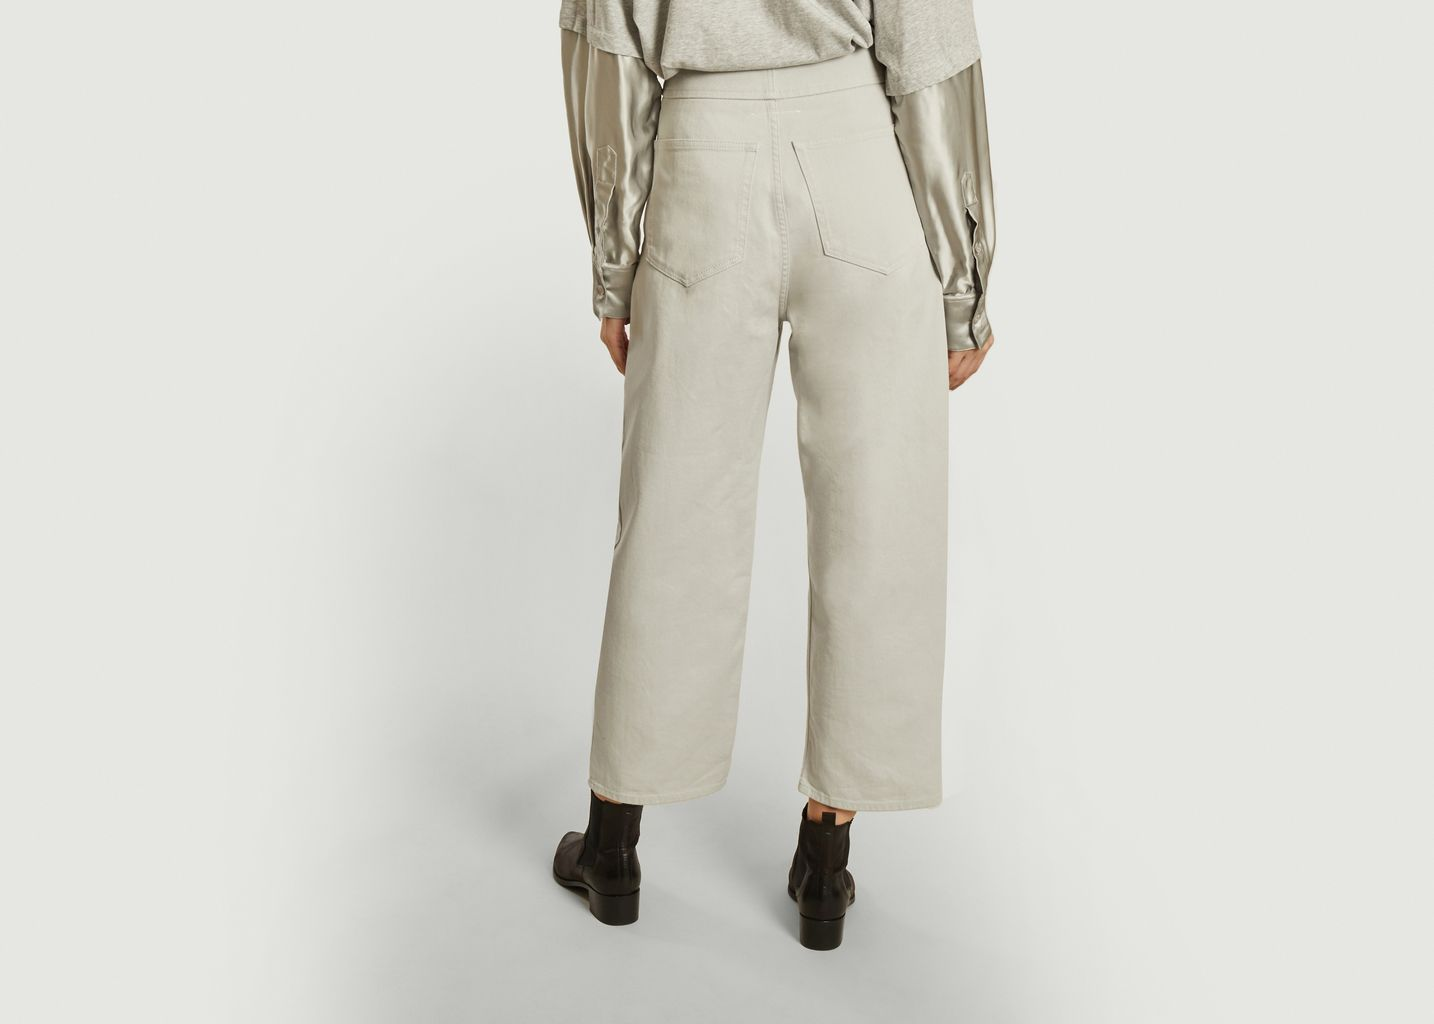 Pantalon Garment  - MM6 Maison Margiela